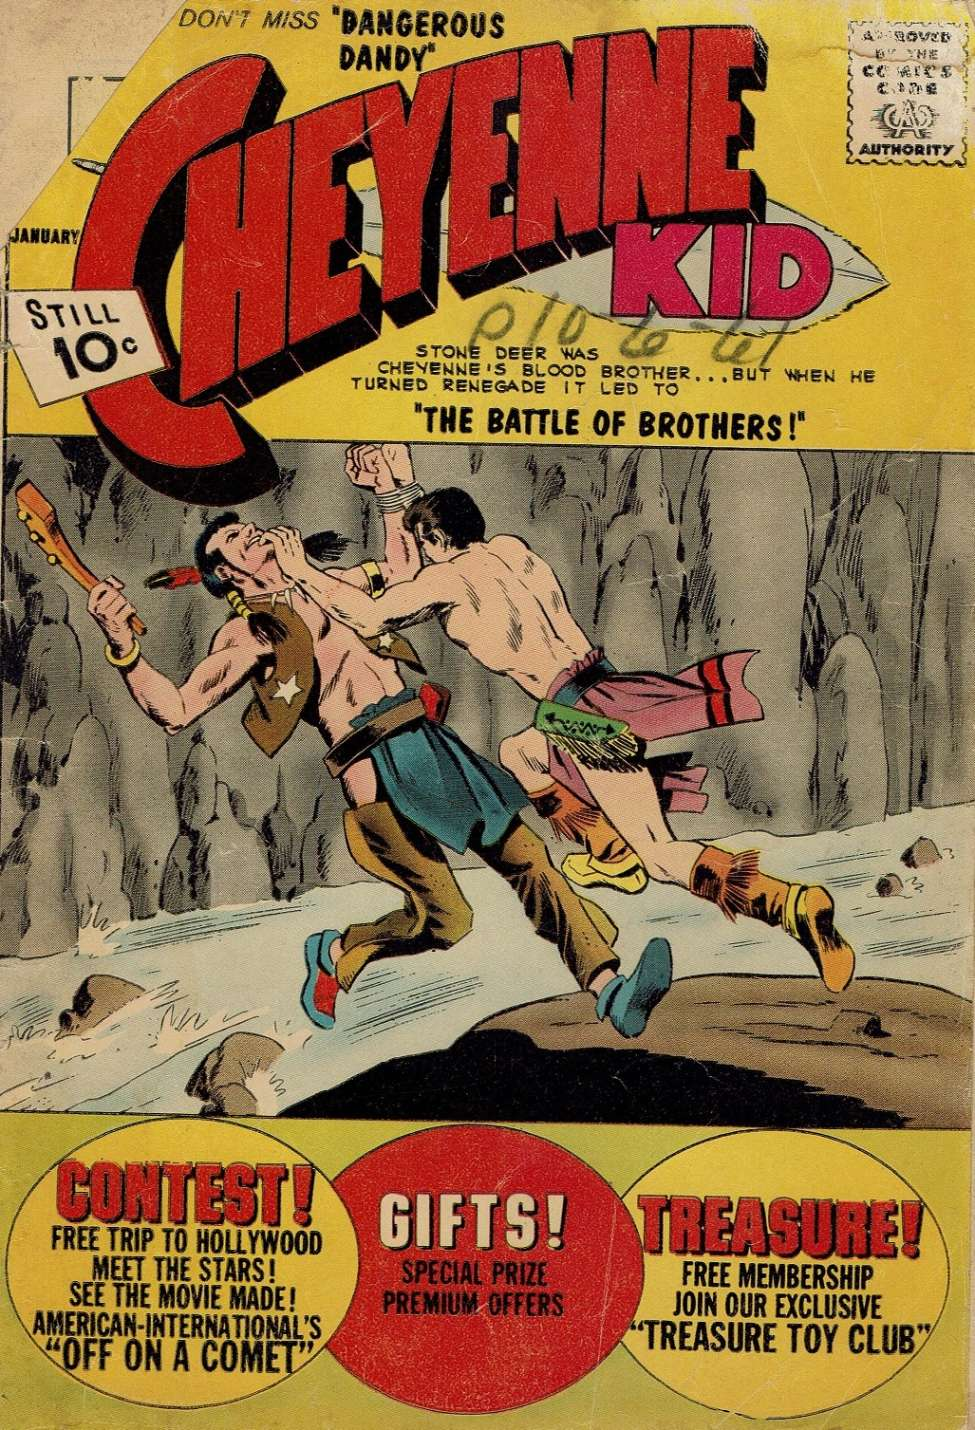 Comic Book Cover For Cheyenne Kid #32